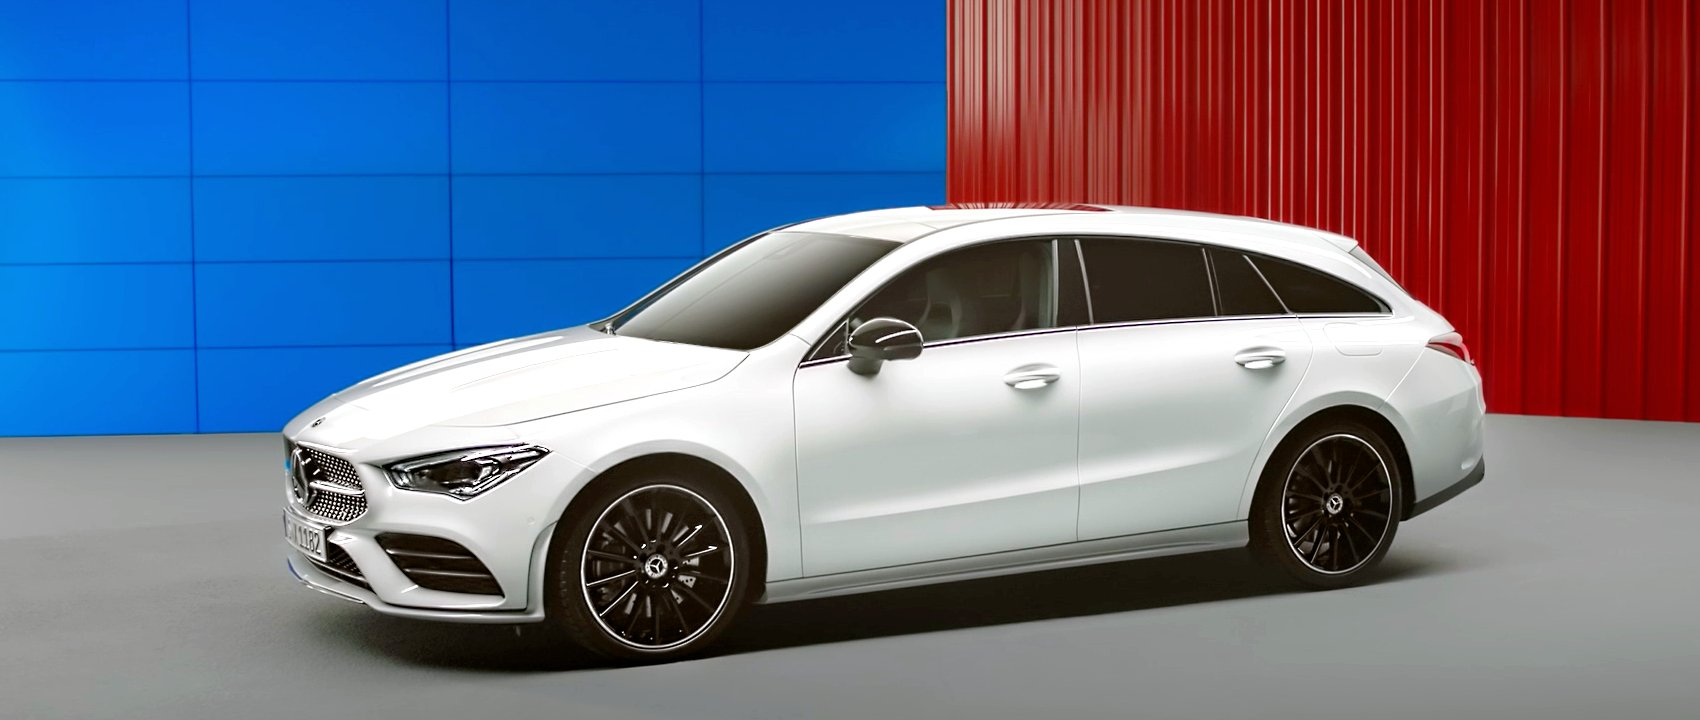 The 2019 Mercedes-Benz CLA Shooting Brake (X 118) in digital white.